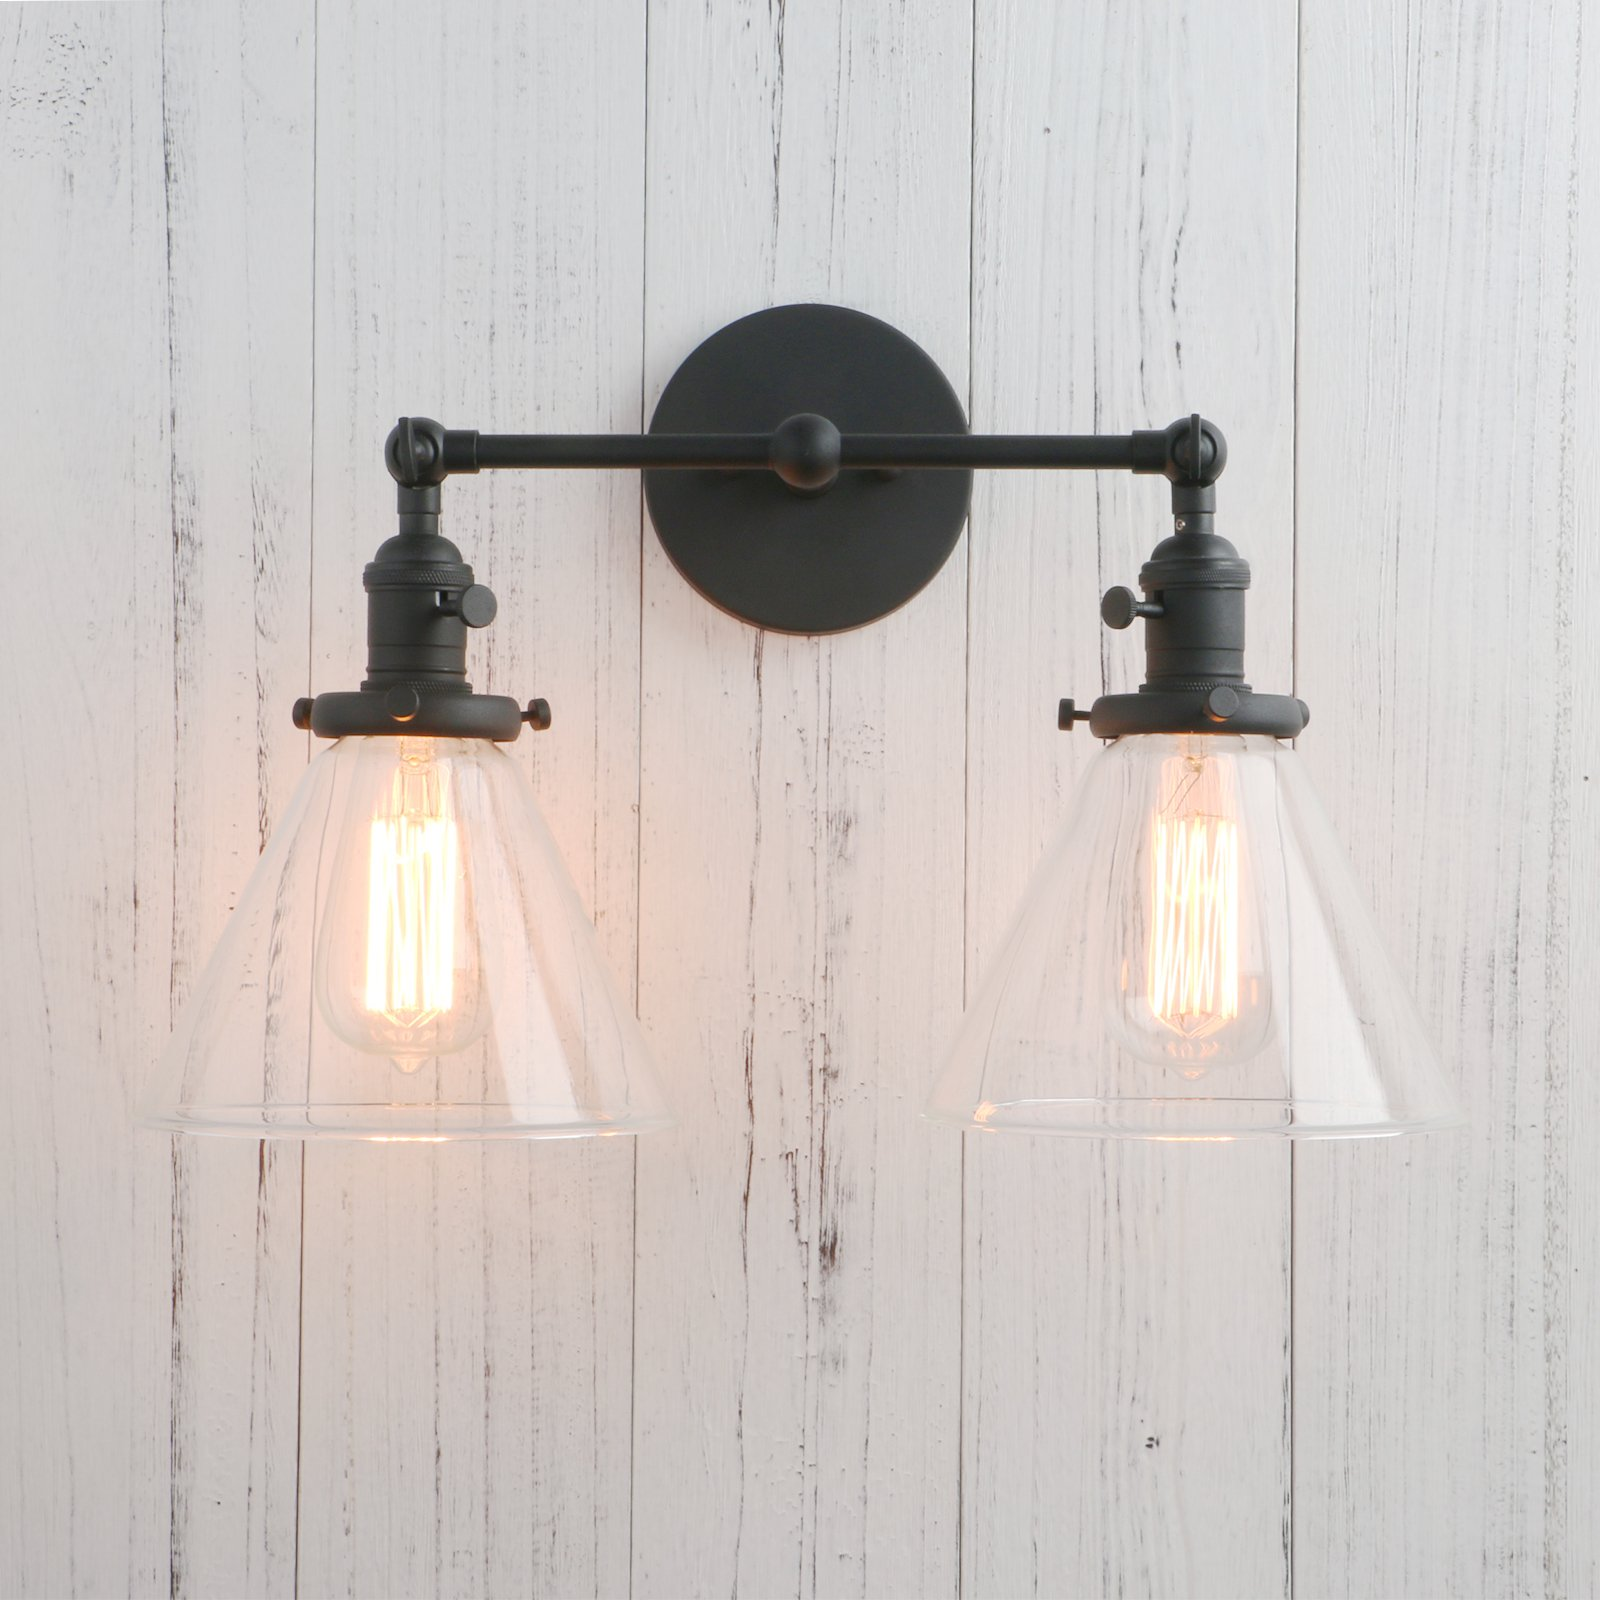 Permo Double Sconce Vintage Industrial Antique 2-lights Wall Sconces with Funnel Flared Glass Clear Glass Shade (Black)